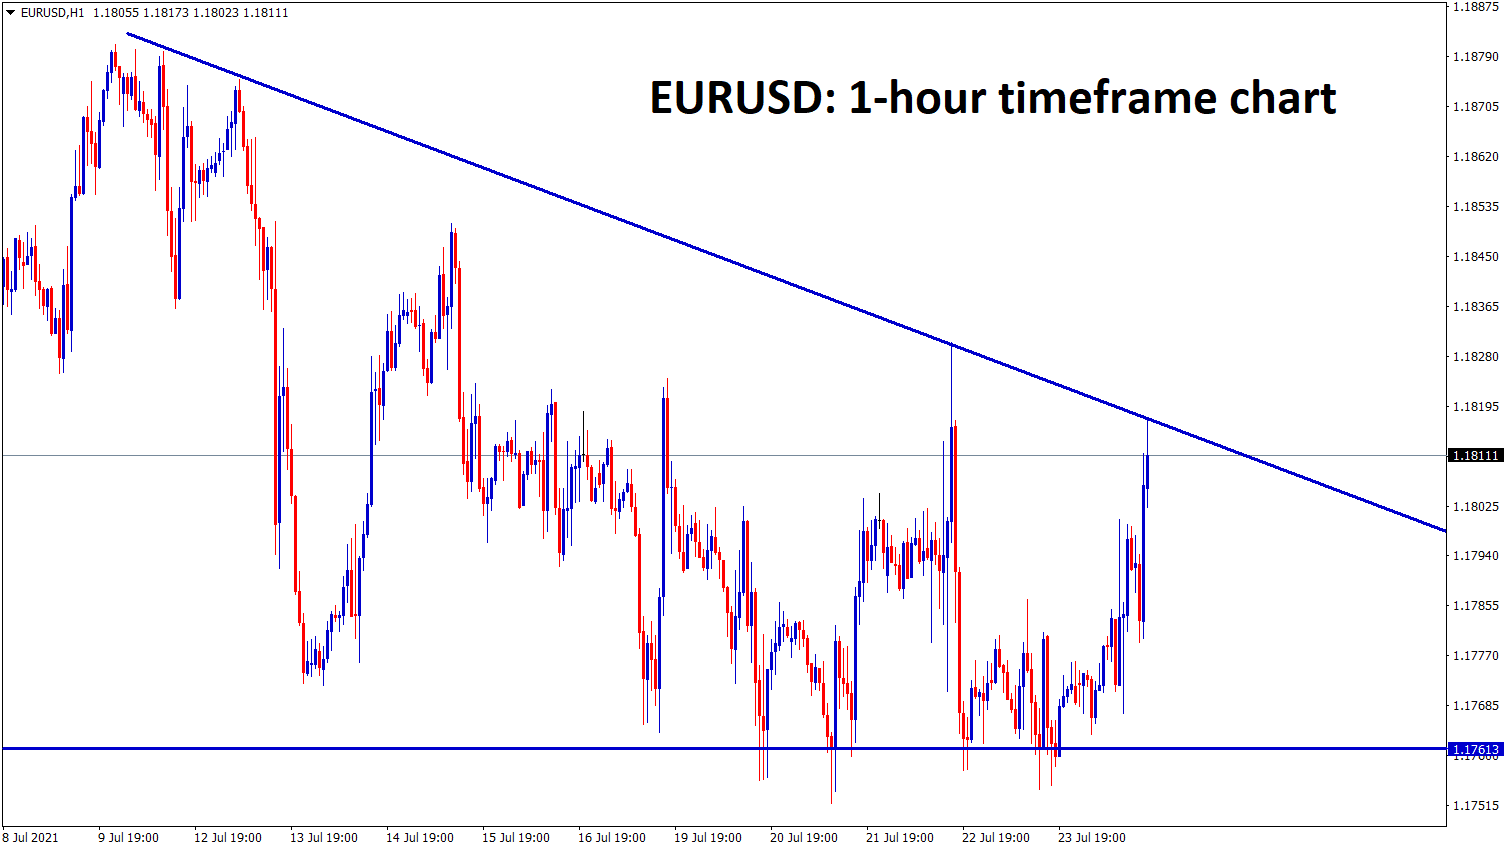 EURUSD is moving in a descending Triangle wait for the breakout from this triangle